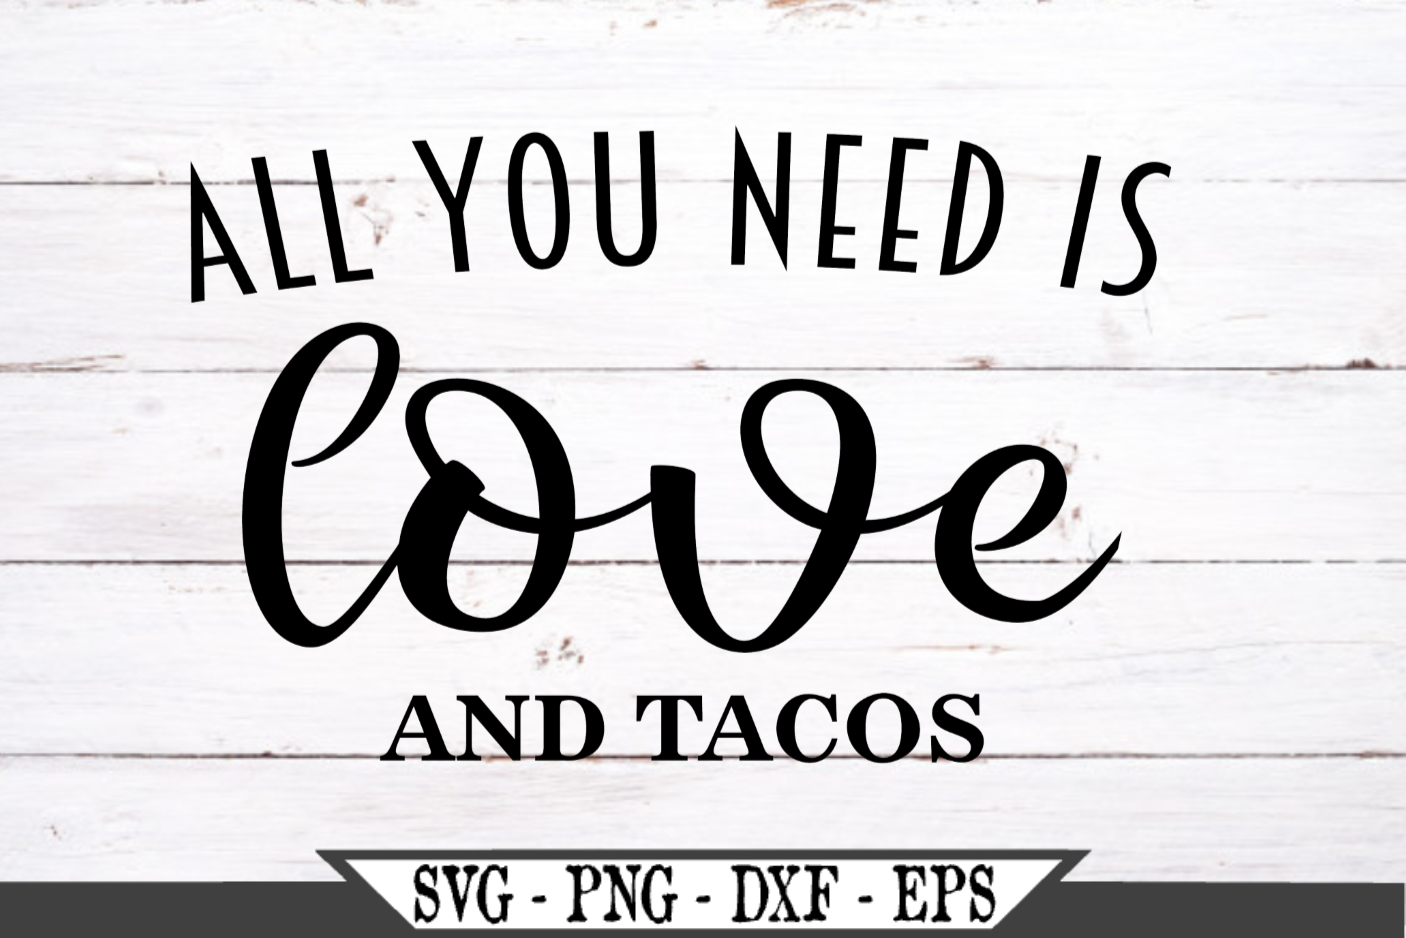 All You Need Is Love And Tacos SVG example image 2